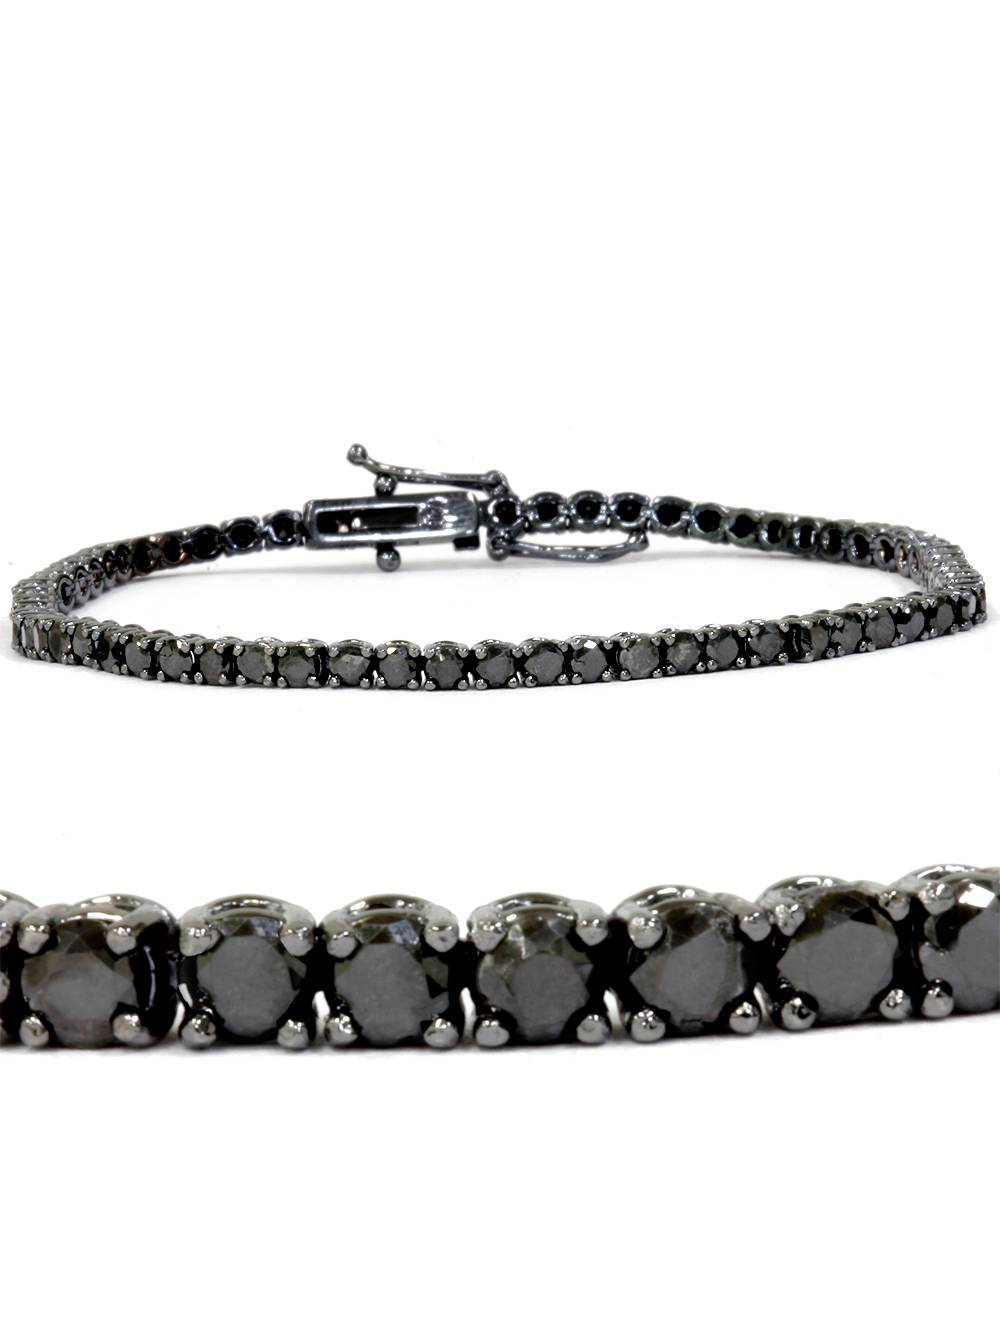 3ct Black Diamond Tennis Bracelet 14K Black Gold 7""